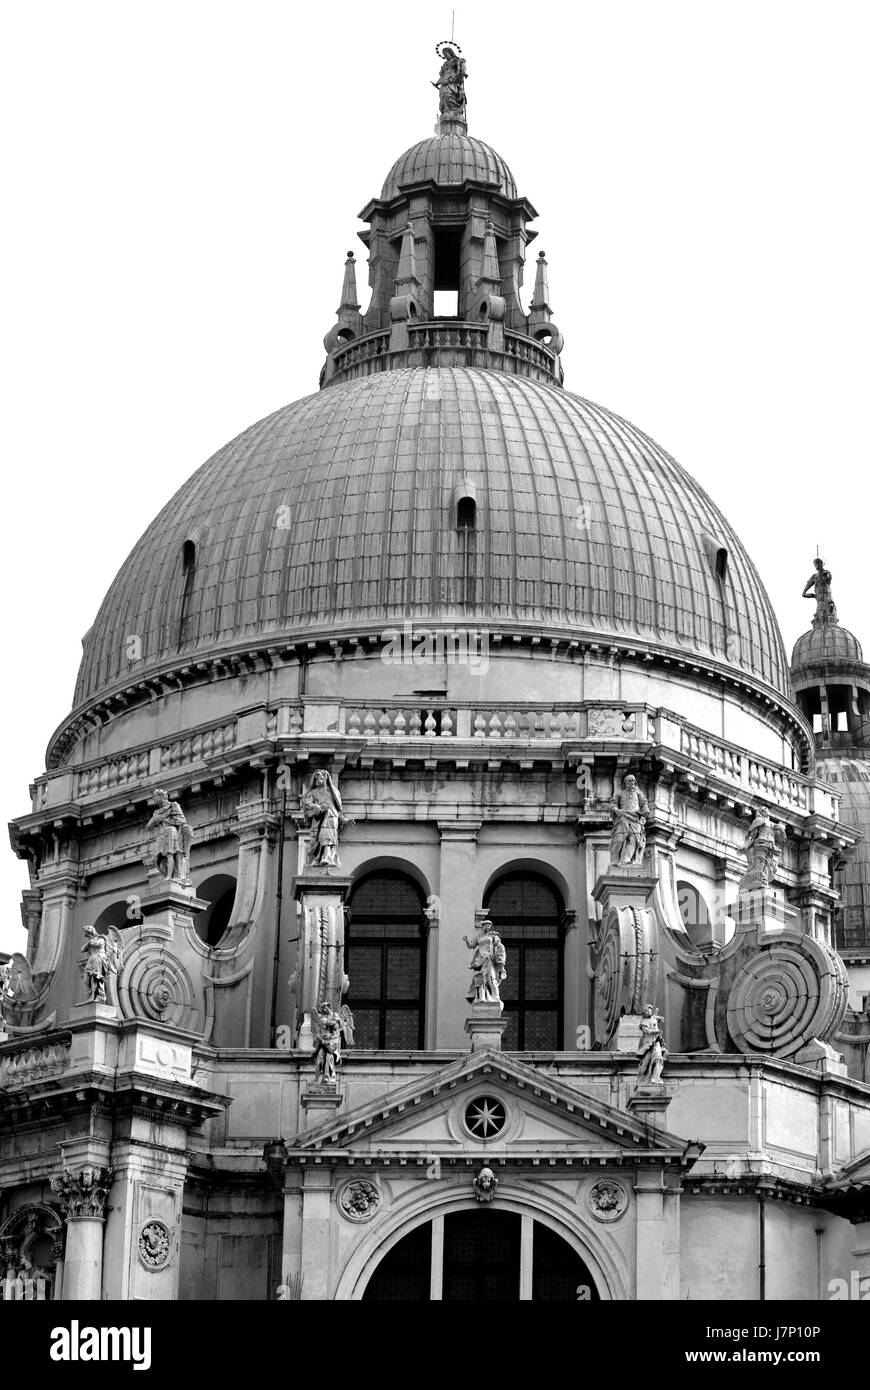 tower religion church stone cathedral dome baroque sculpture chapel venice - Stock Image